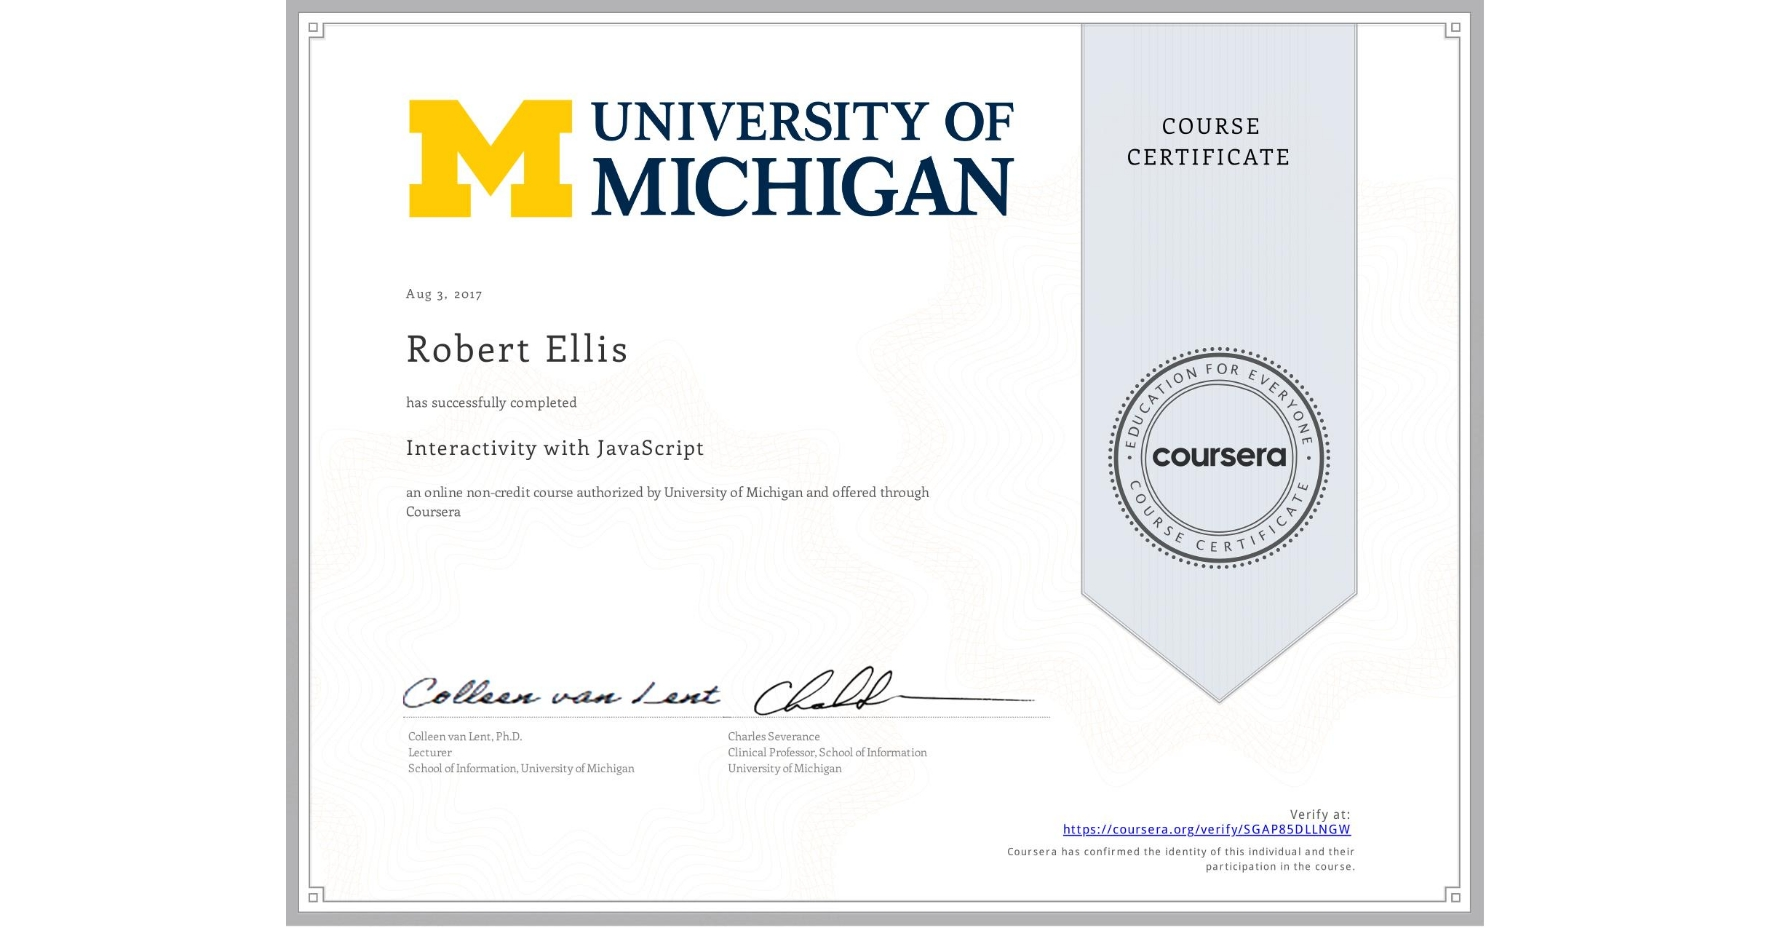 View certificate for Robert Ellis, Interactivity with JavaScript, an online non-credit course authorized by University of Michigan and offered through Coursera